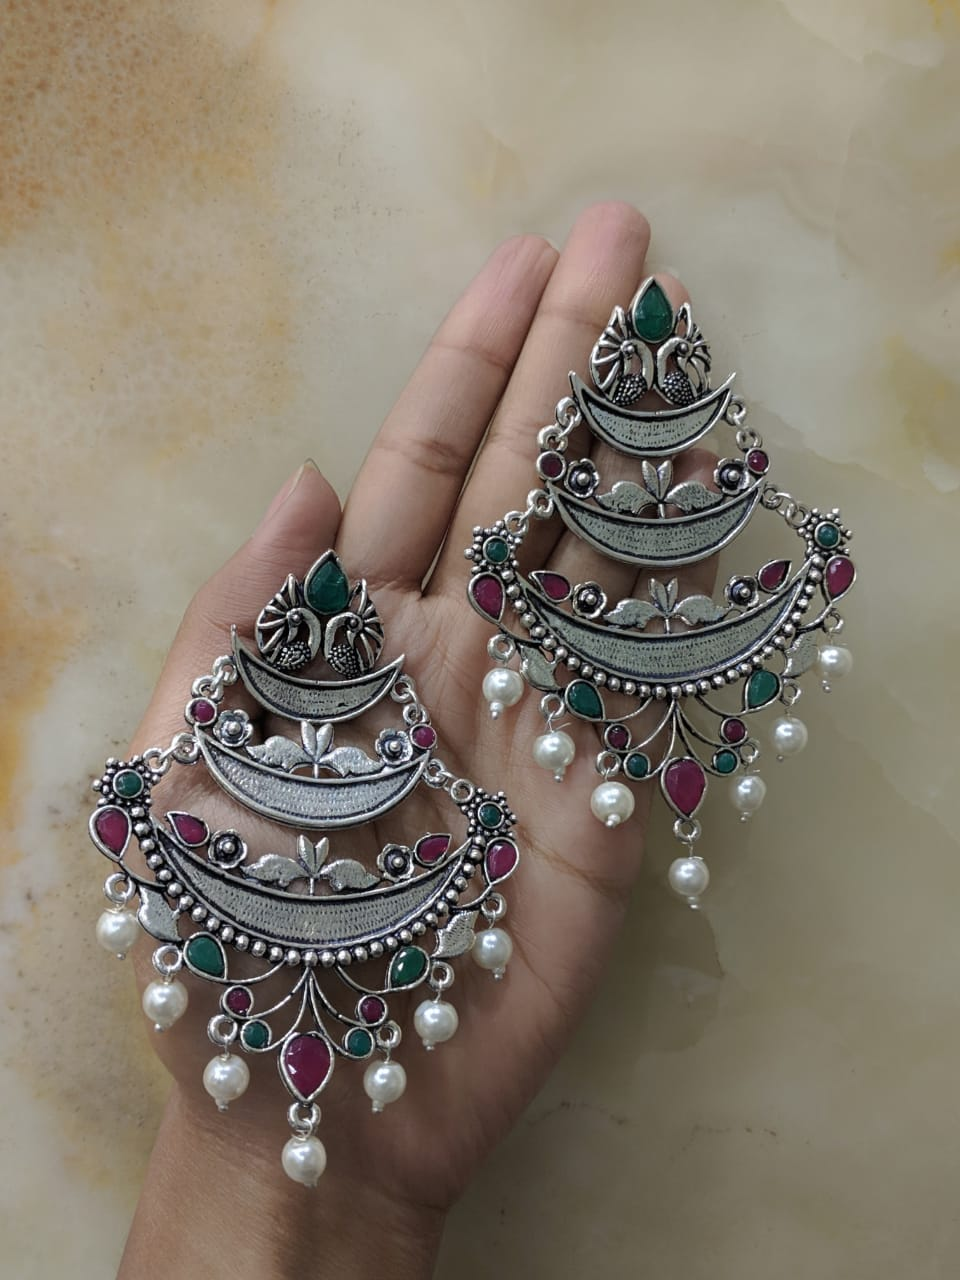 Digital Jhumki Earrings for Women Designer Oxidised Silver Earring Afghani Tribal Bohemian German Silver Stylish Party Wear Dangle Drop Earrings Jaipuri Tribal Peacock Emerald Pearl Antique Jewellery